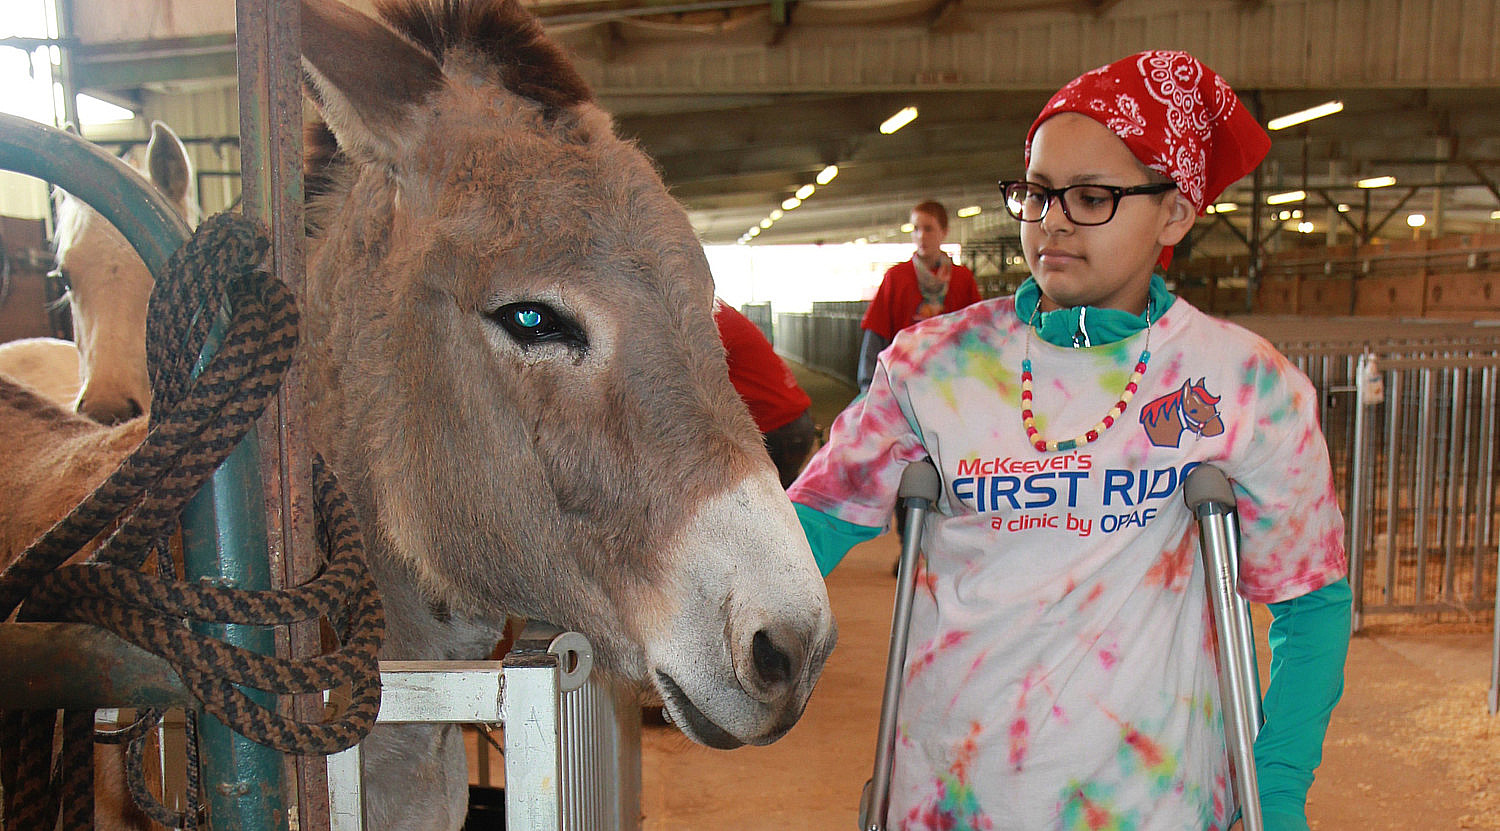 donkey girl crutches petting zoo